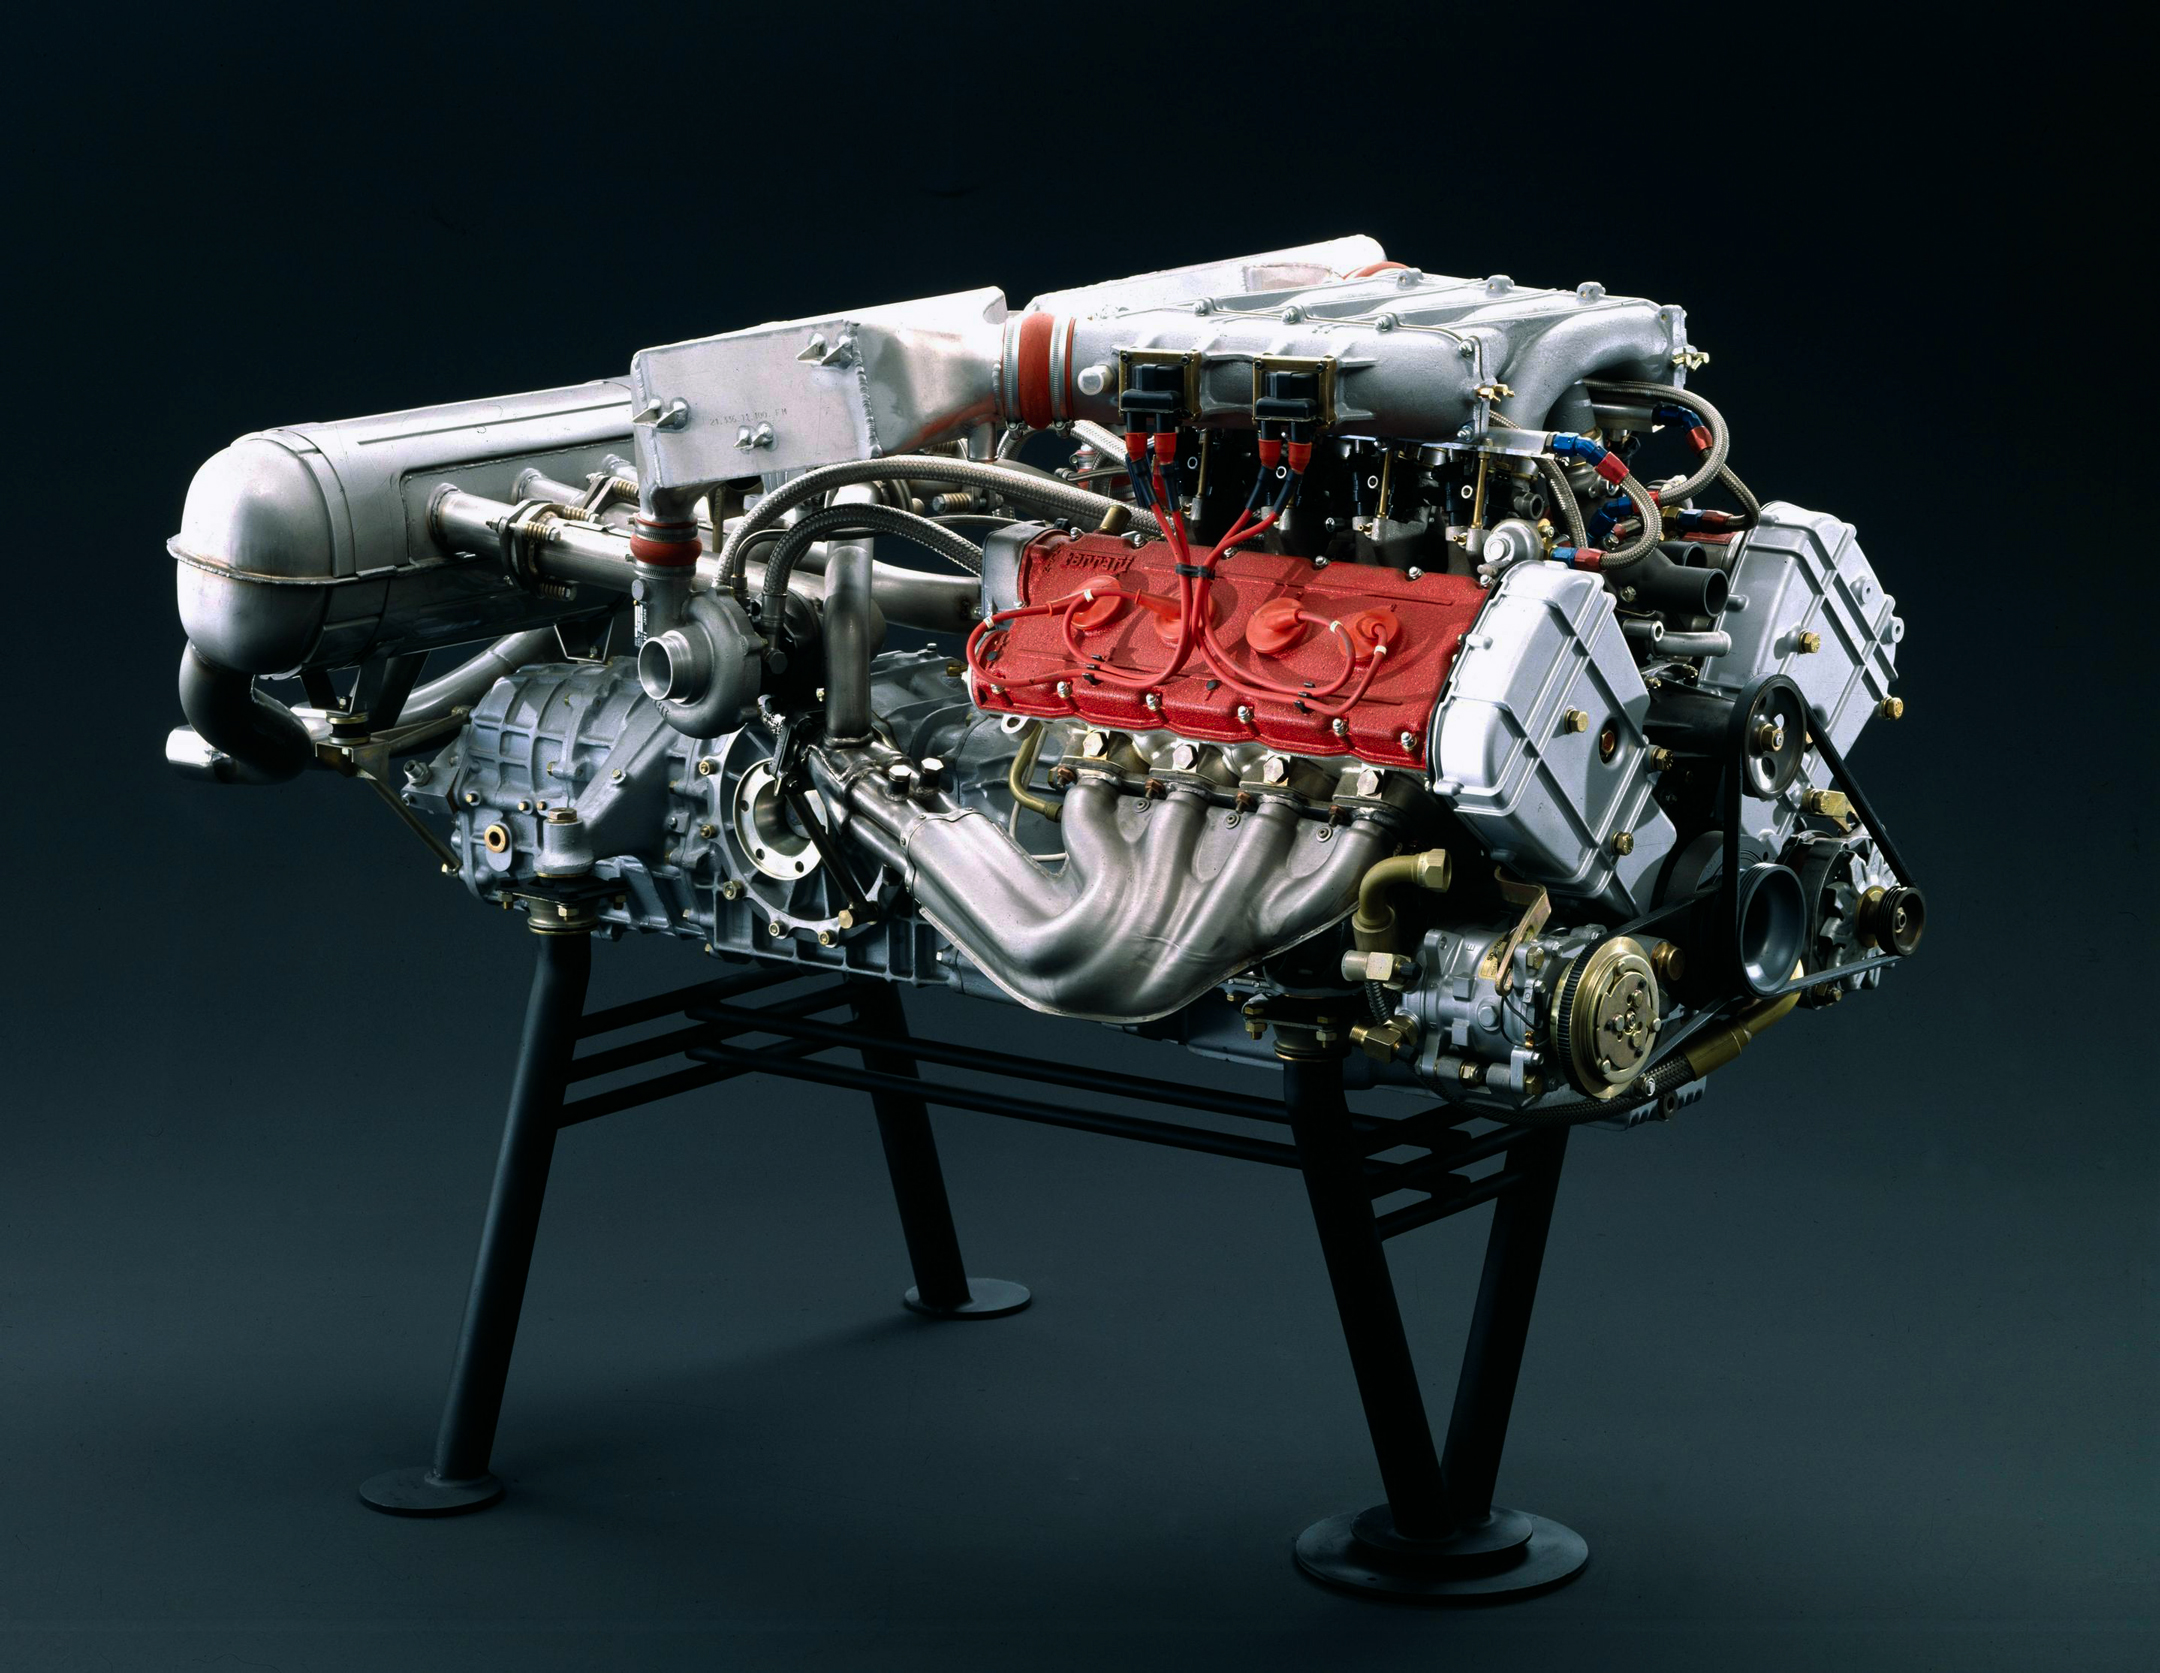 Ferrari F40 - engine / motore - Tipo F120A - 3.0L Twin Turbo V8